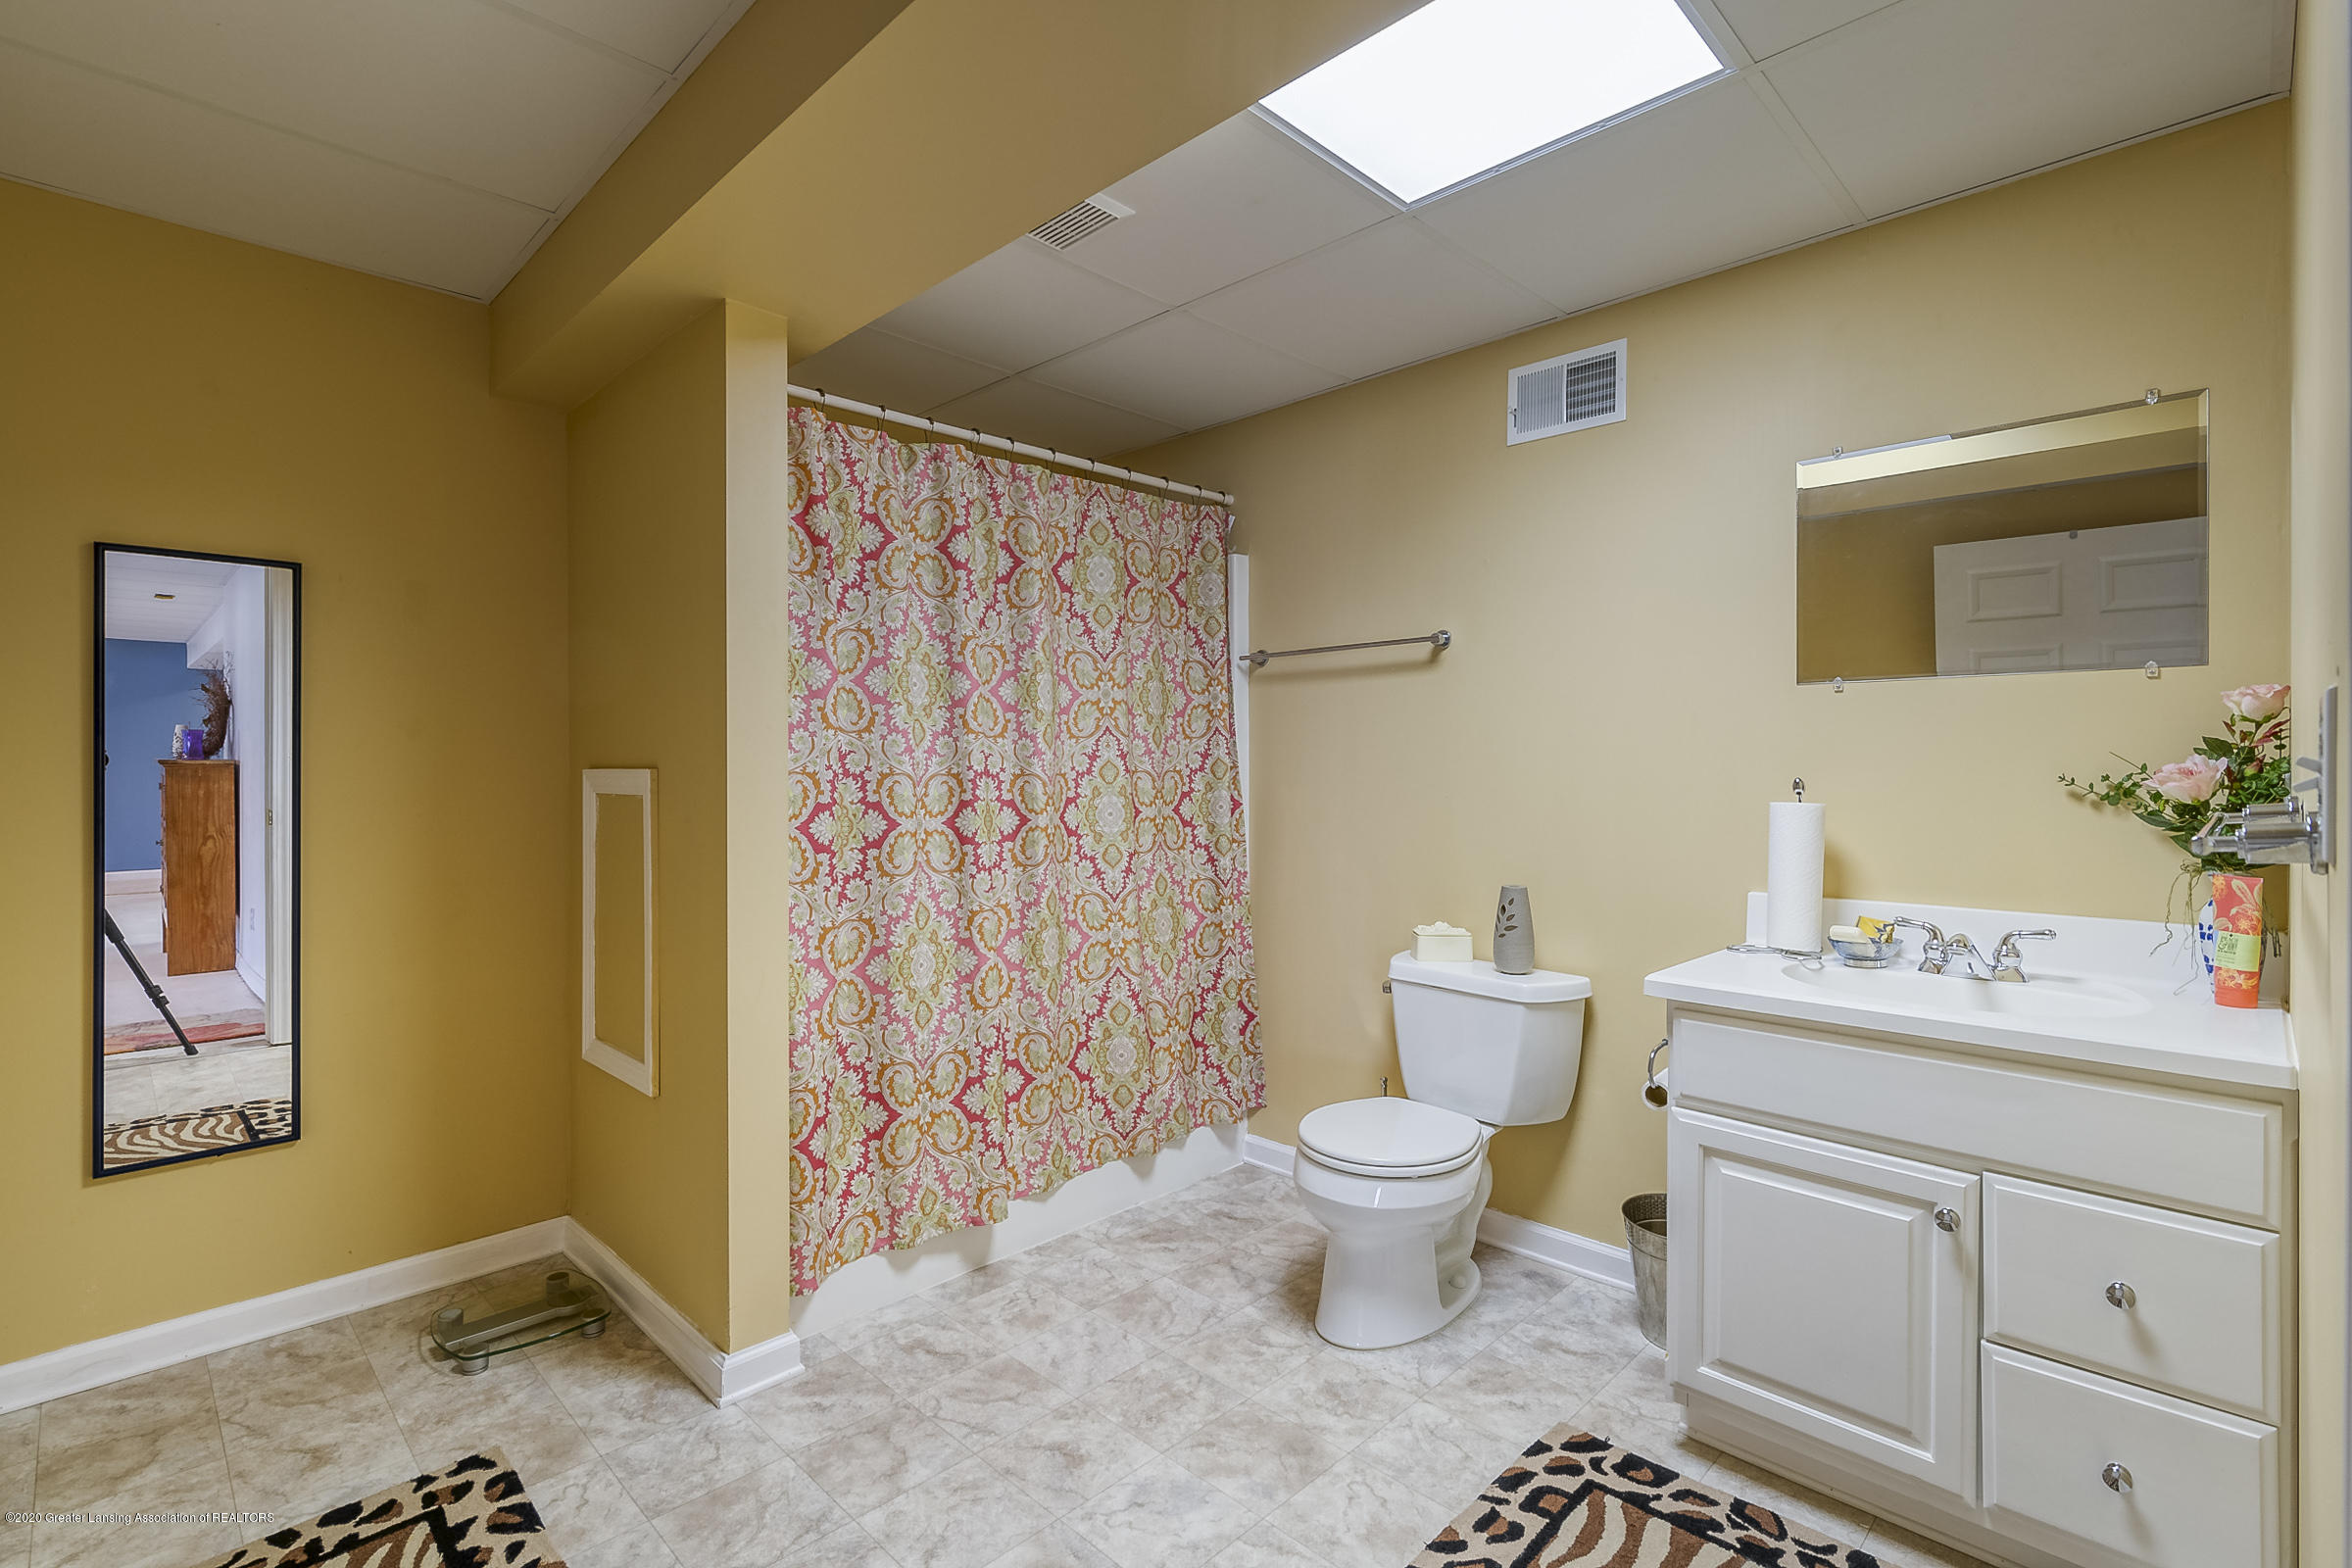 4092 Pheasant Run - BATHROOM LL - 35